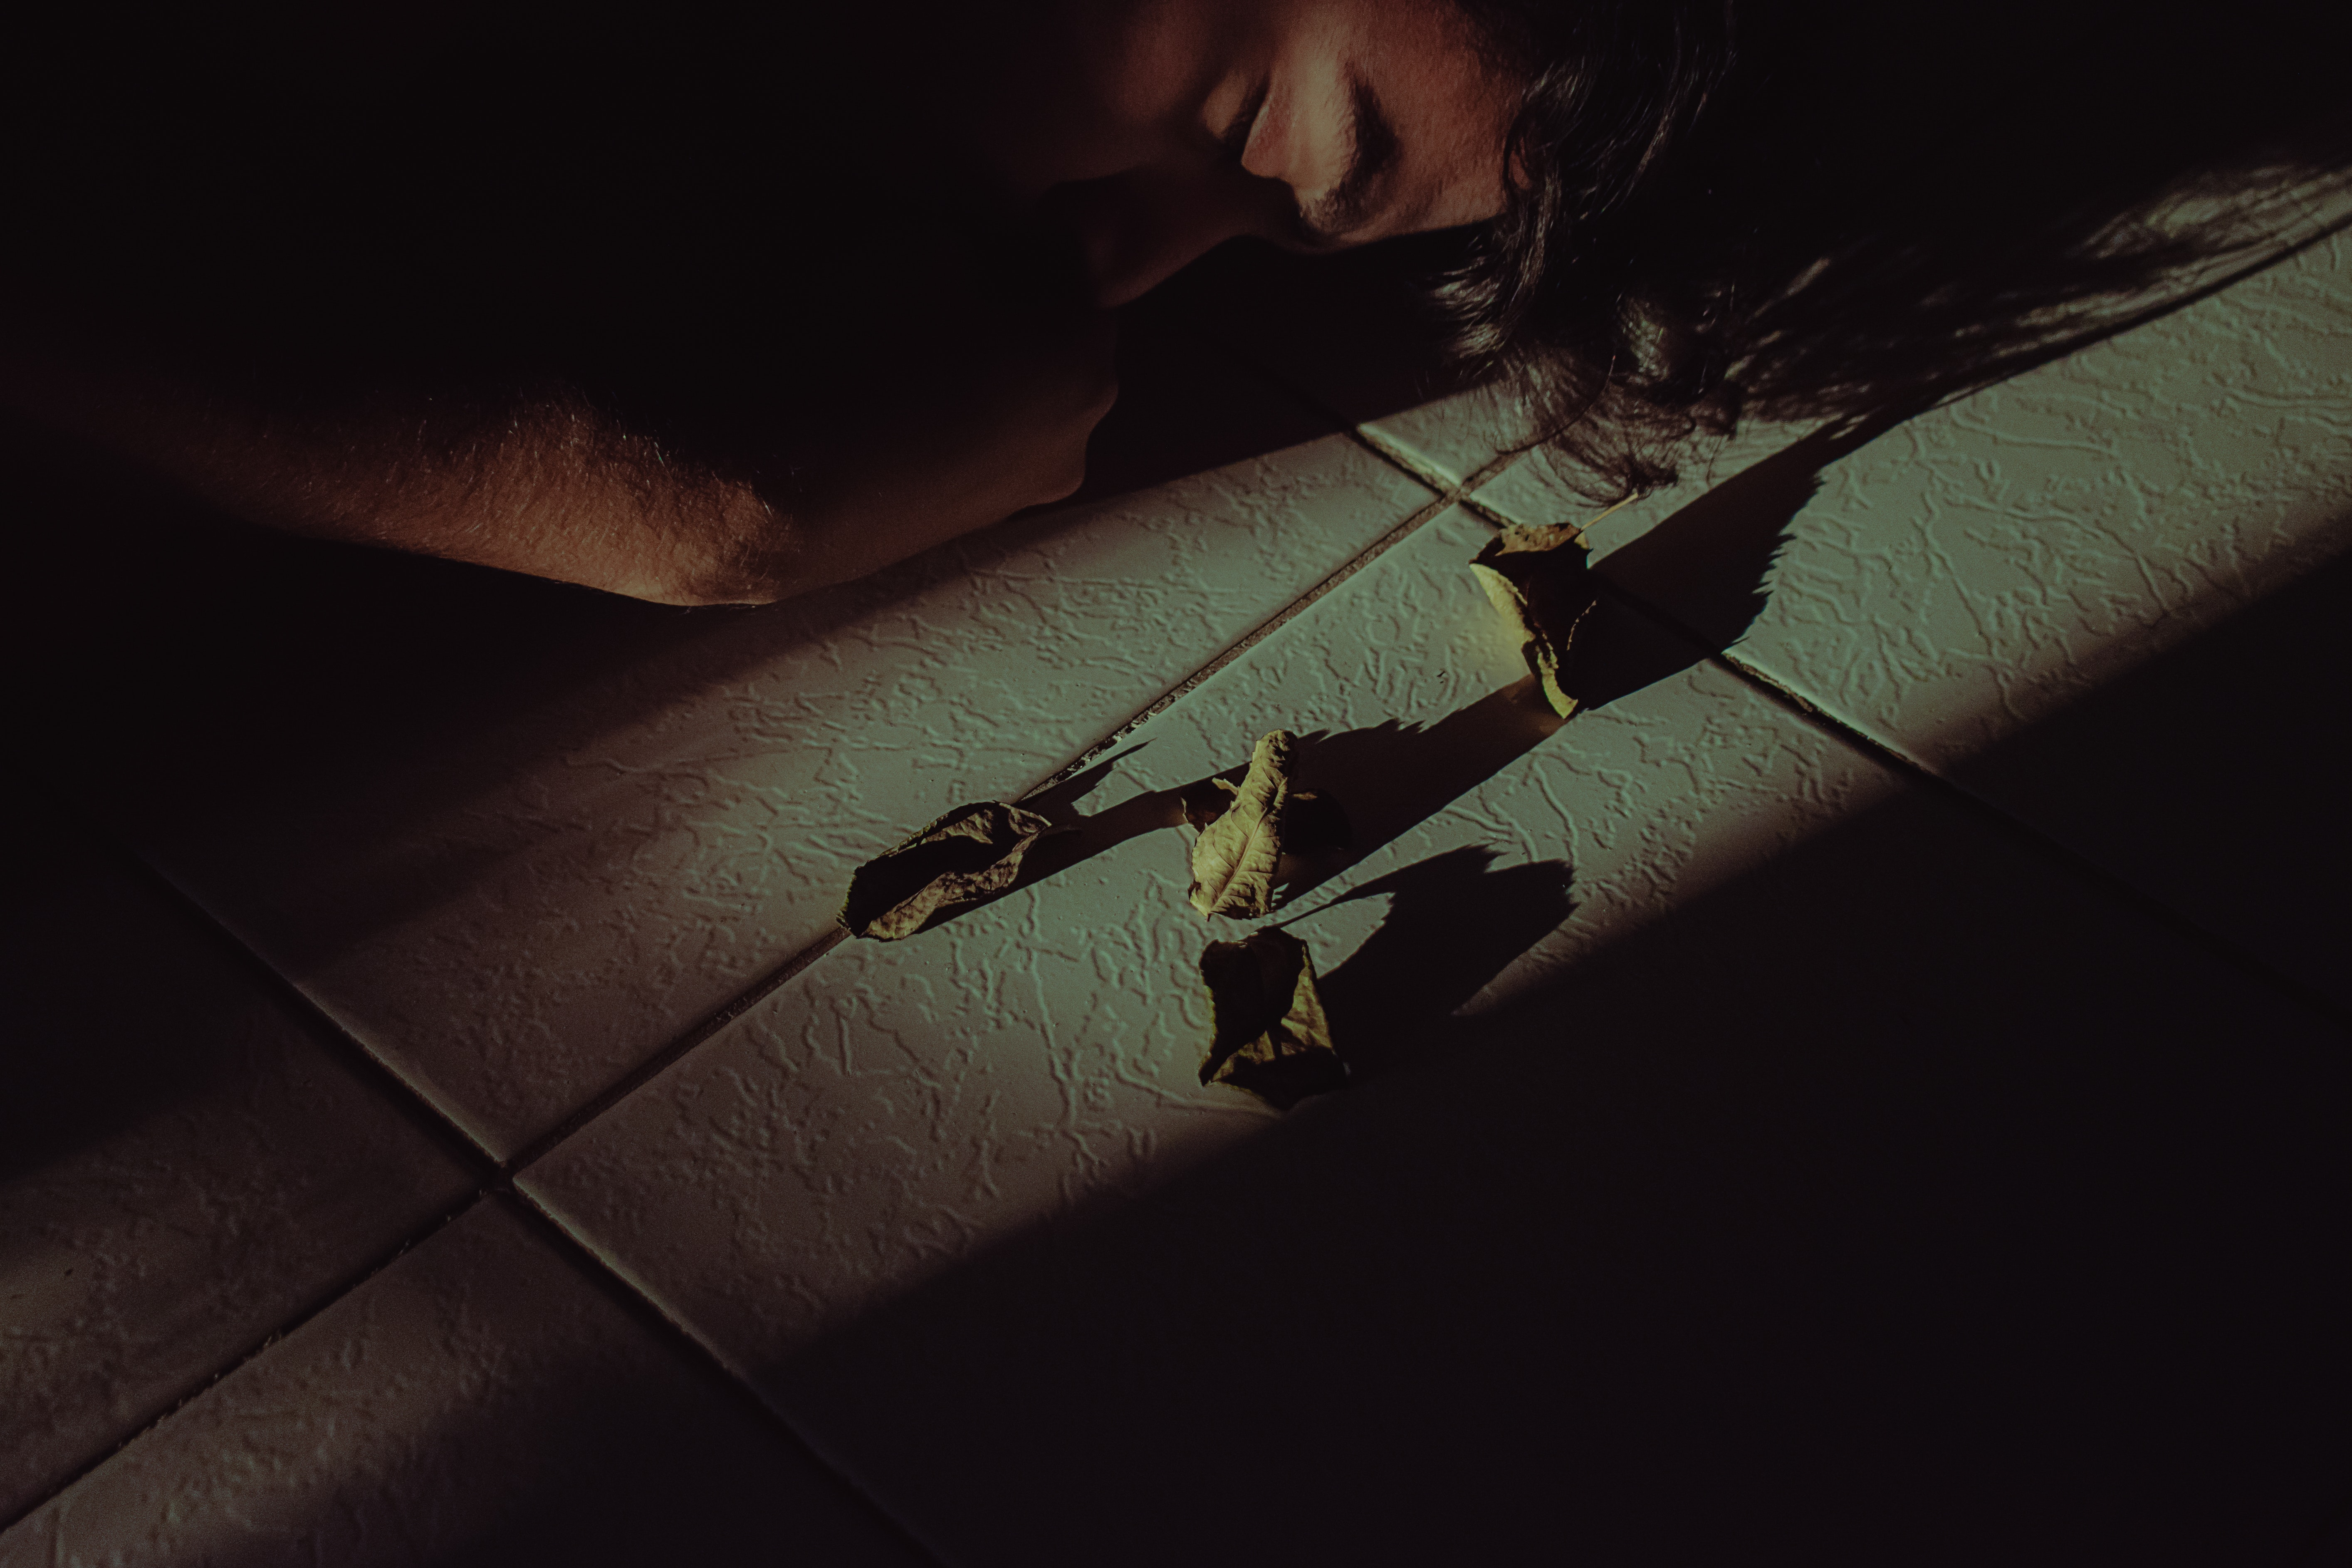 person-sleeping-beside-dead-leaves.jpg